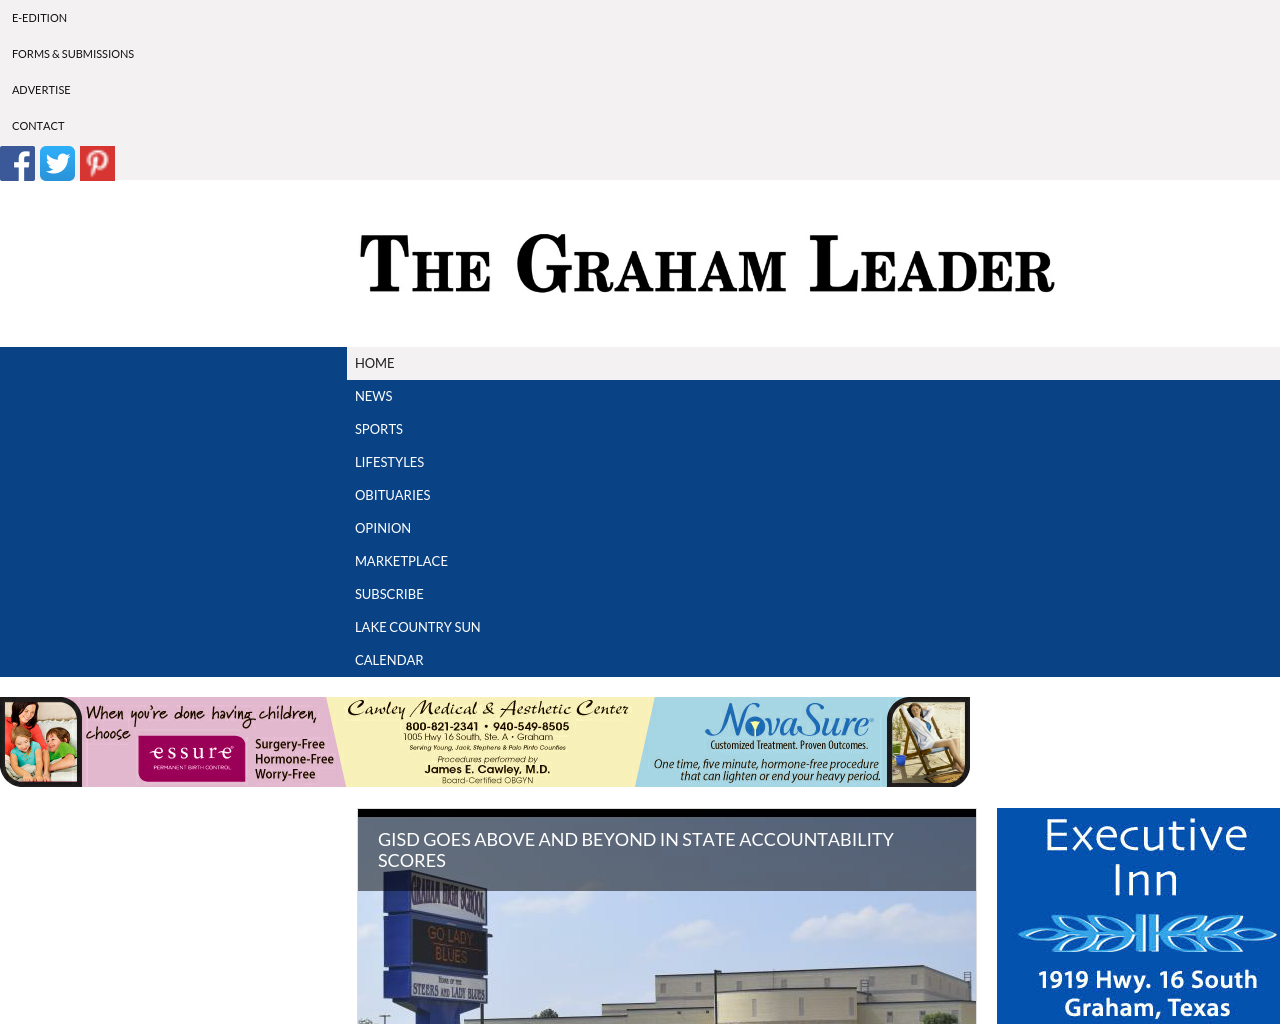 The-Graham-Leader-Advertising-Reviews-Pricing